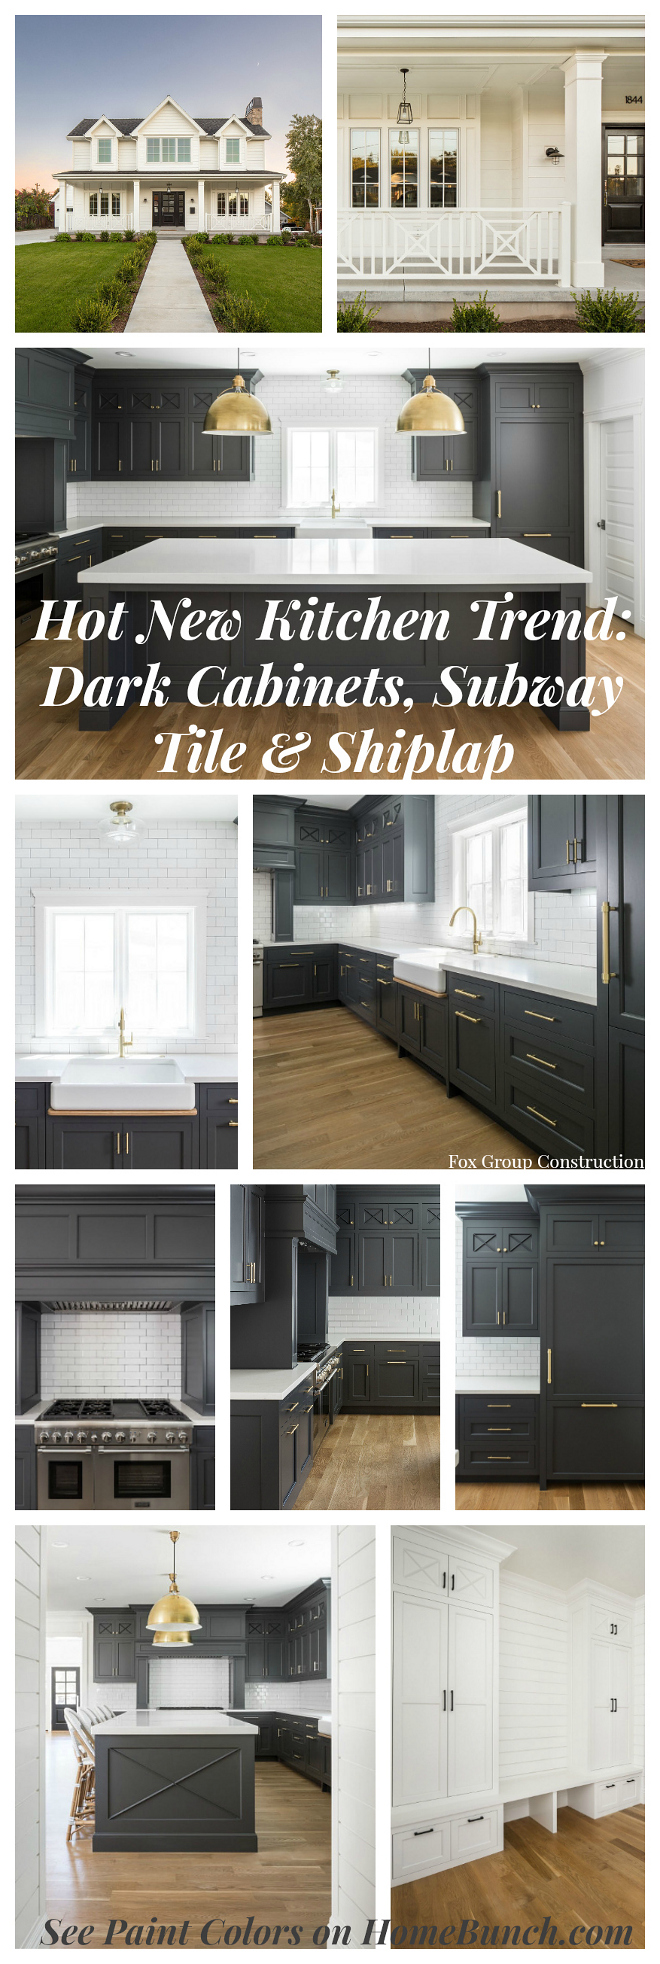 Hot New Kitchen Trend Dark Cabinets, Subway Tile & Shiplap. See paint colors on Home Bunch. #NewKitchenTrend #DarkCabinets #SubwayTile #shiplap #paintcolor